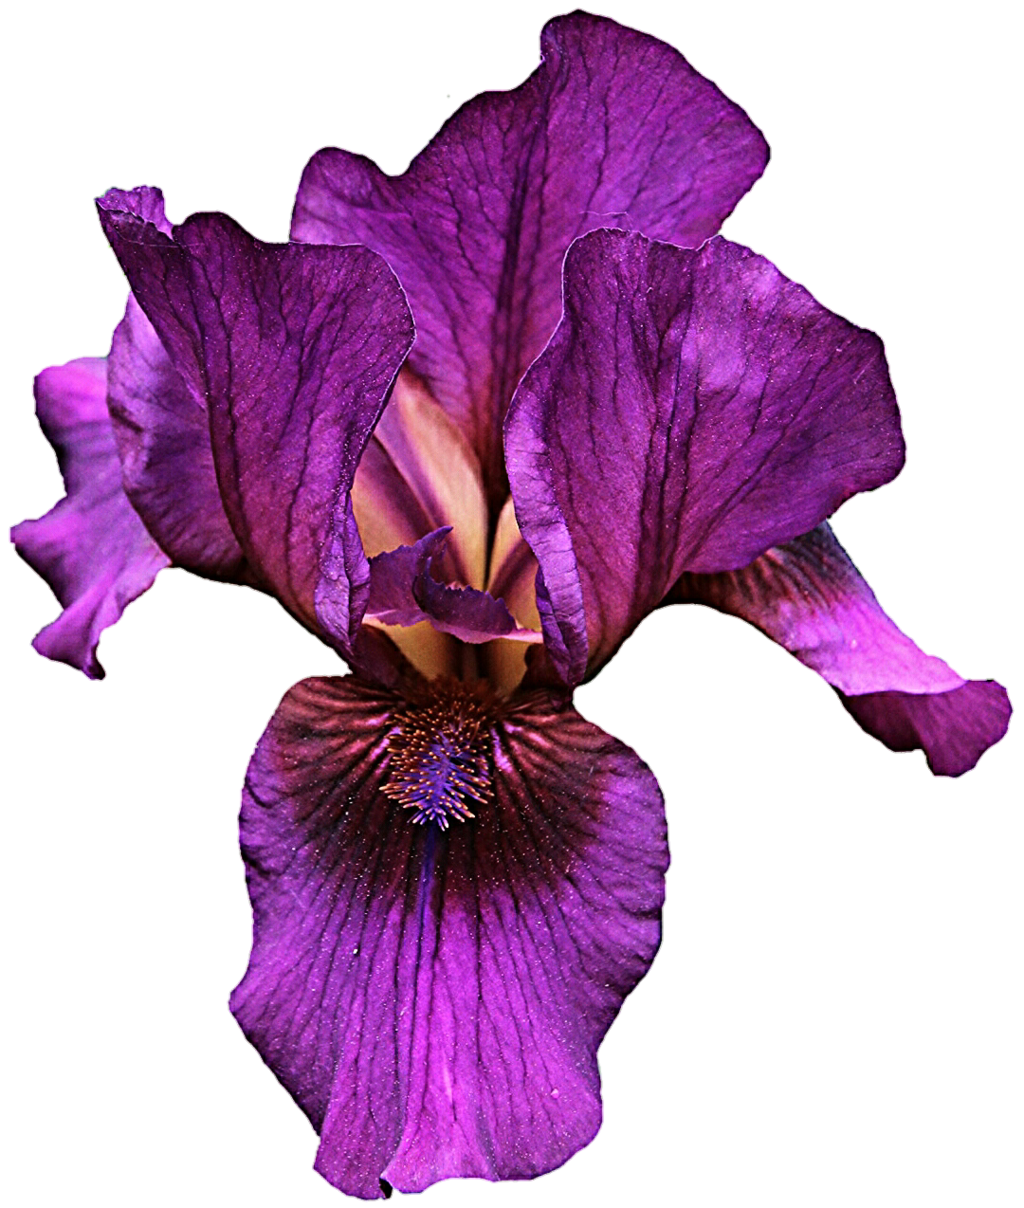 Iris Flower Clipart at GetDrawings.com | Free for personal use Iris ... picture freeuse